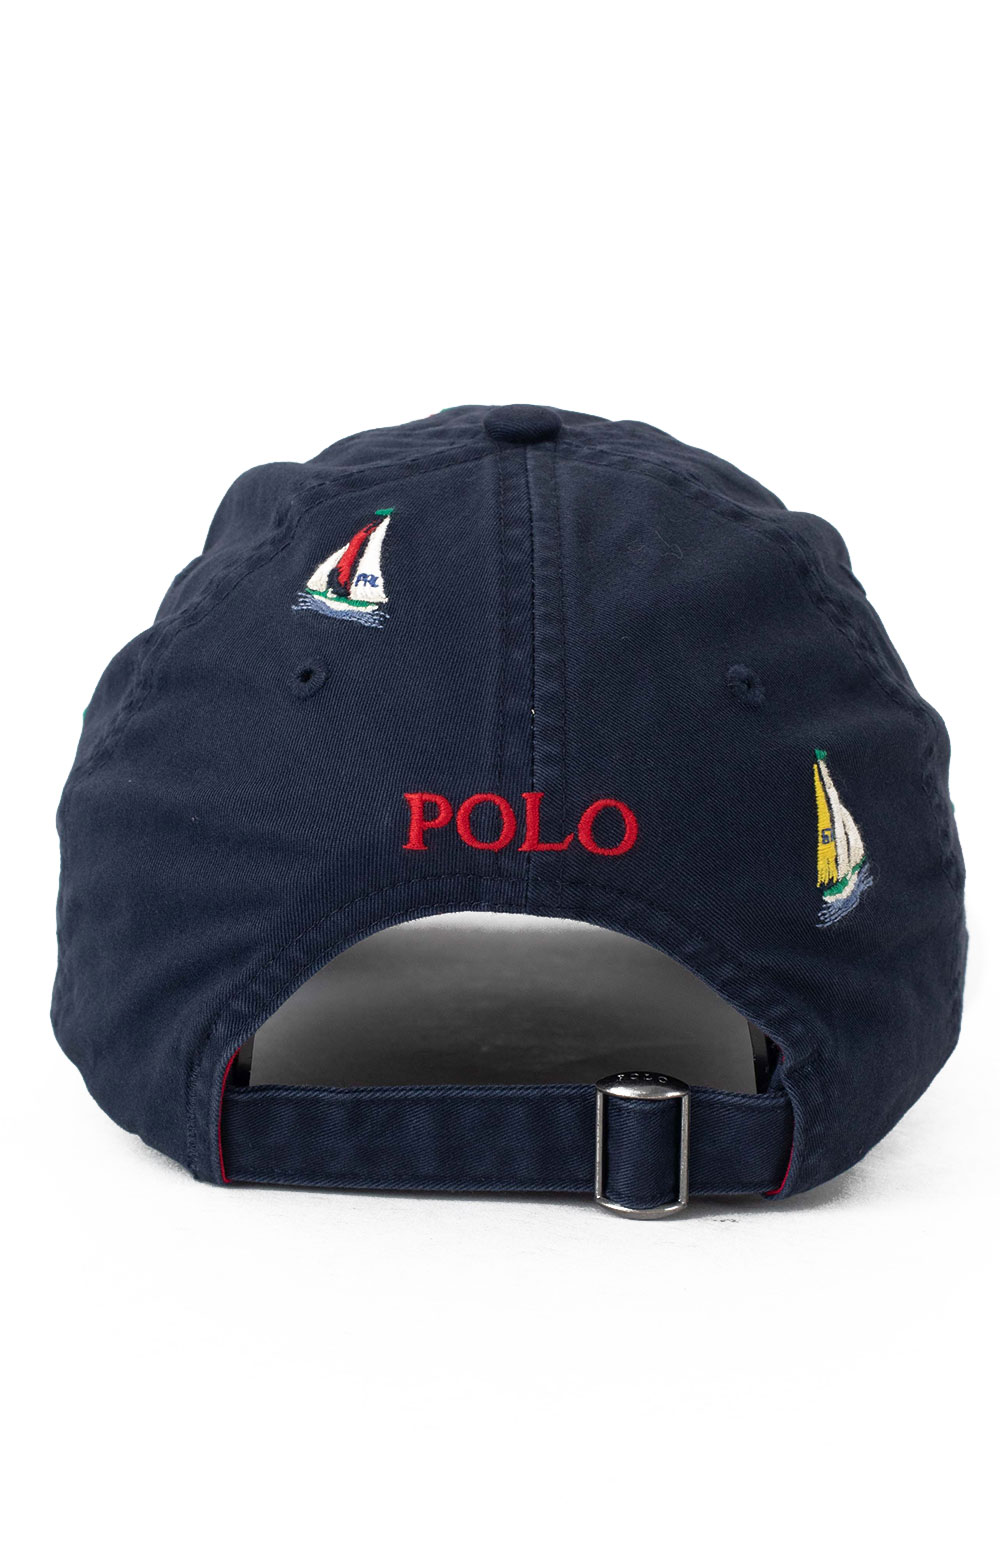 Embroidered Sailboat Ball Cap - Navy 3